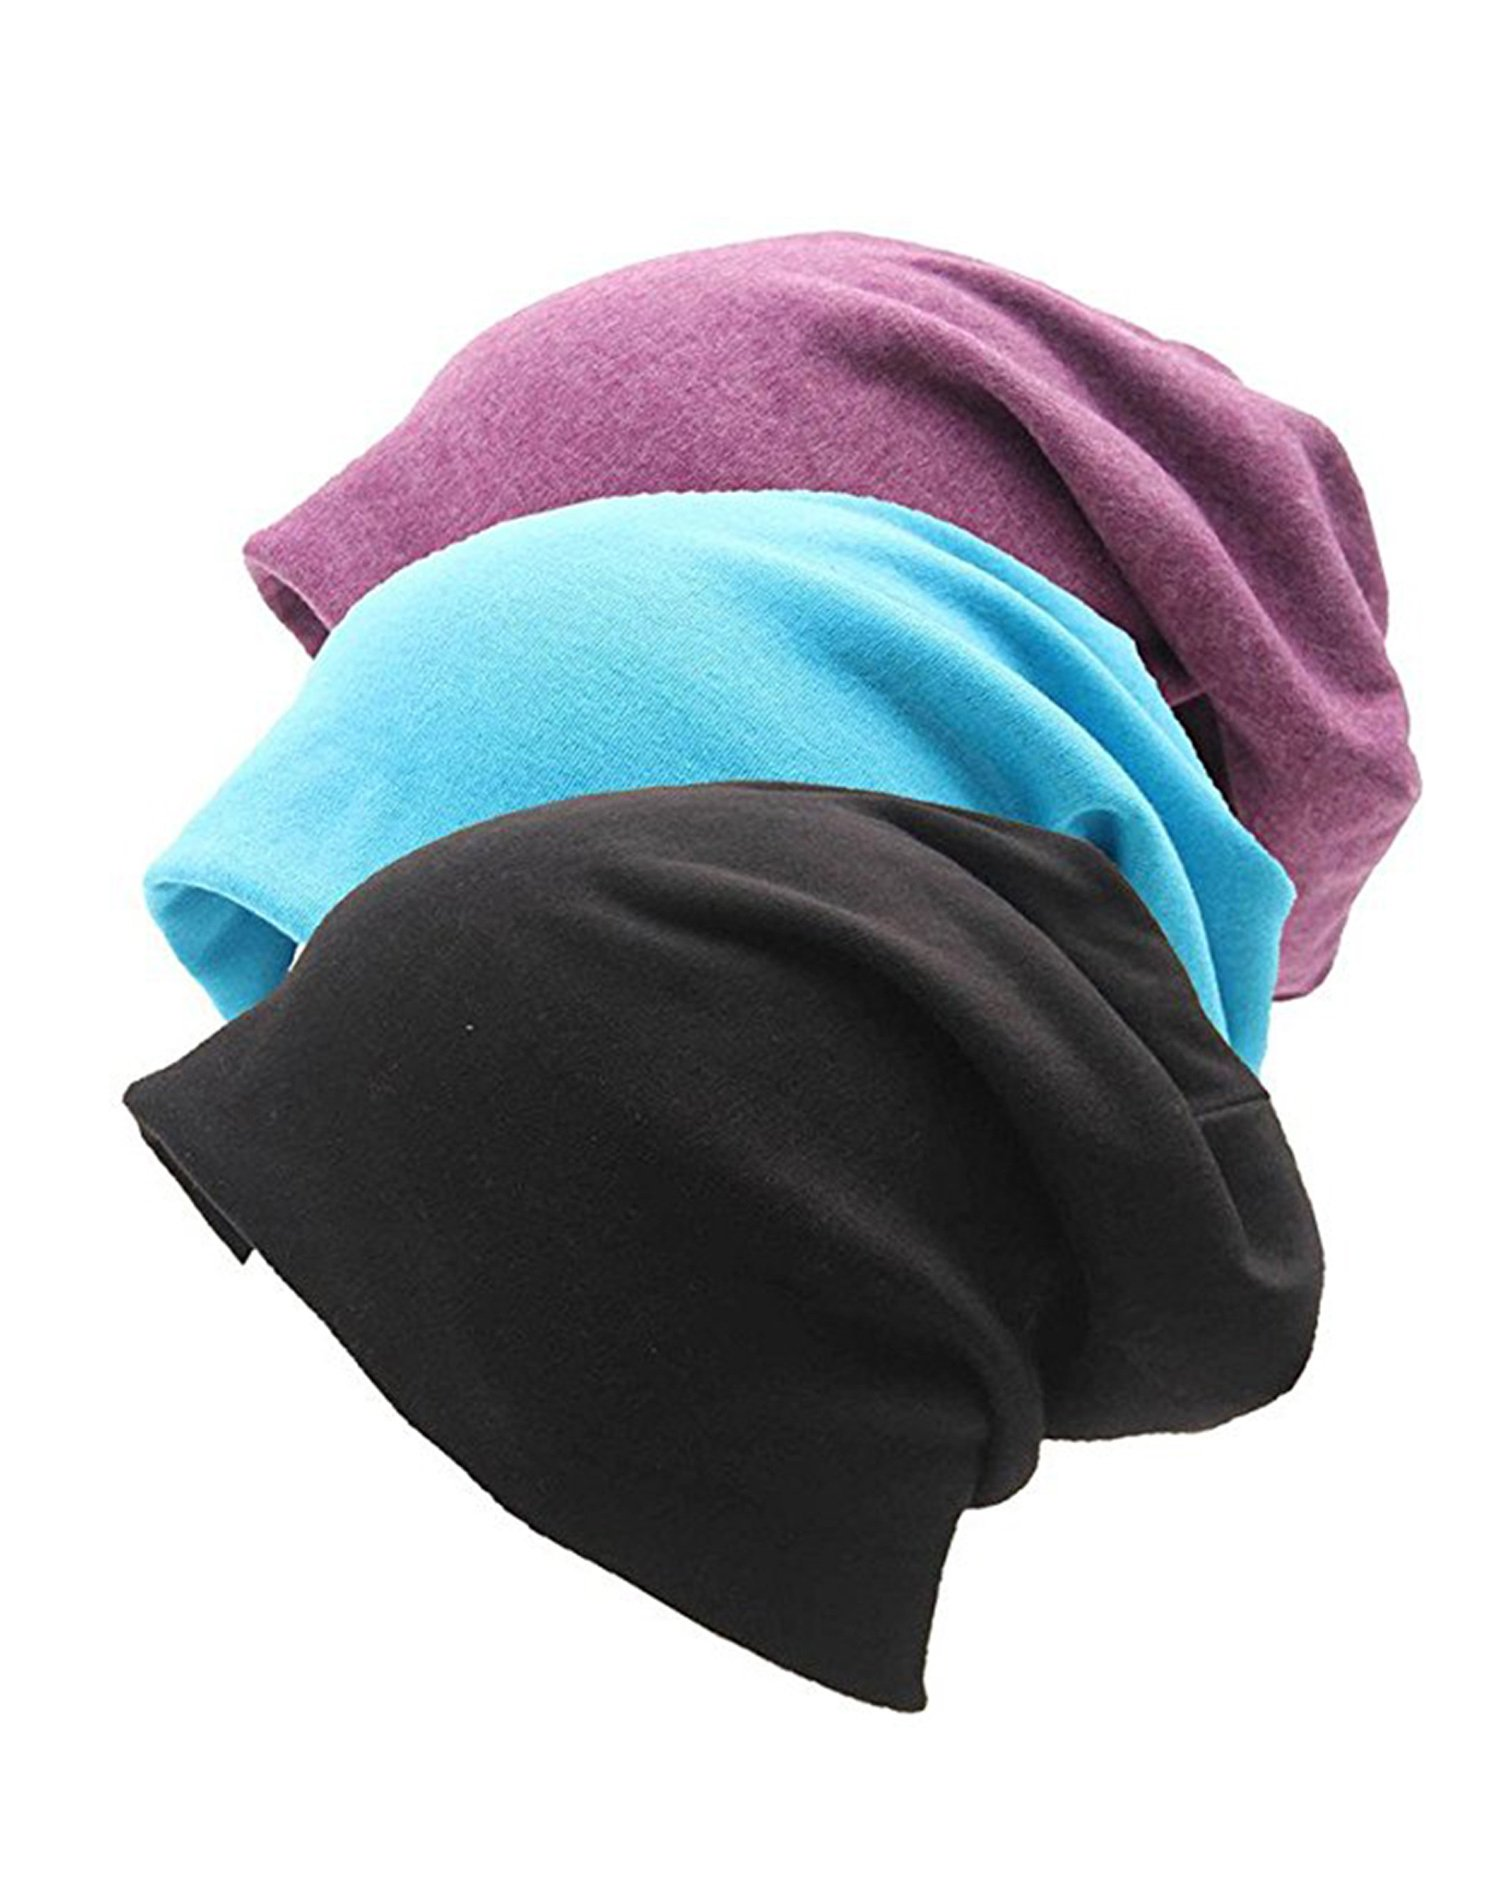 Women's Chemo Hat Beanie Turban Headwear for Cancer Patients